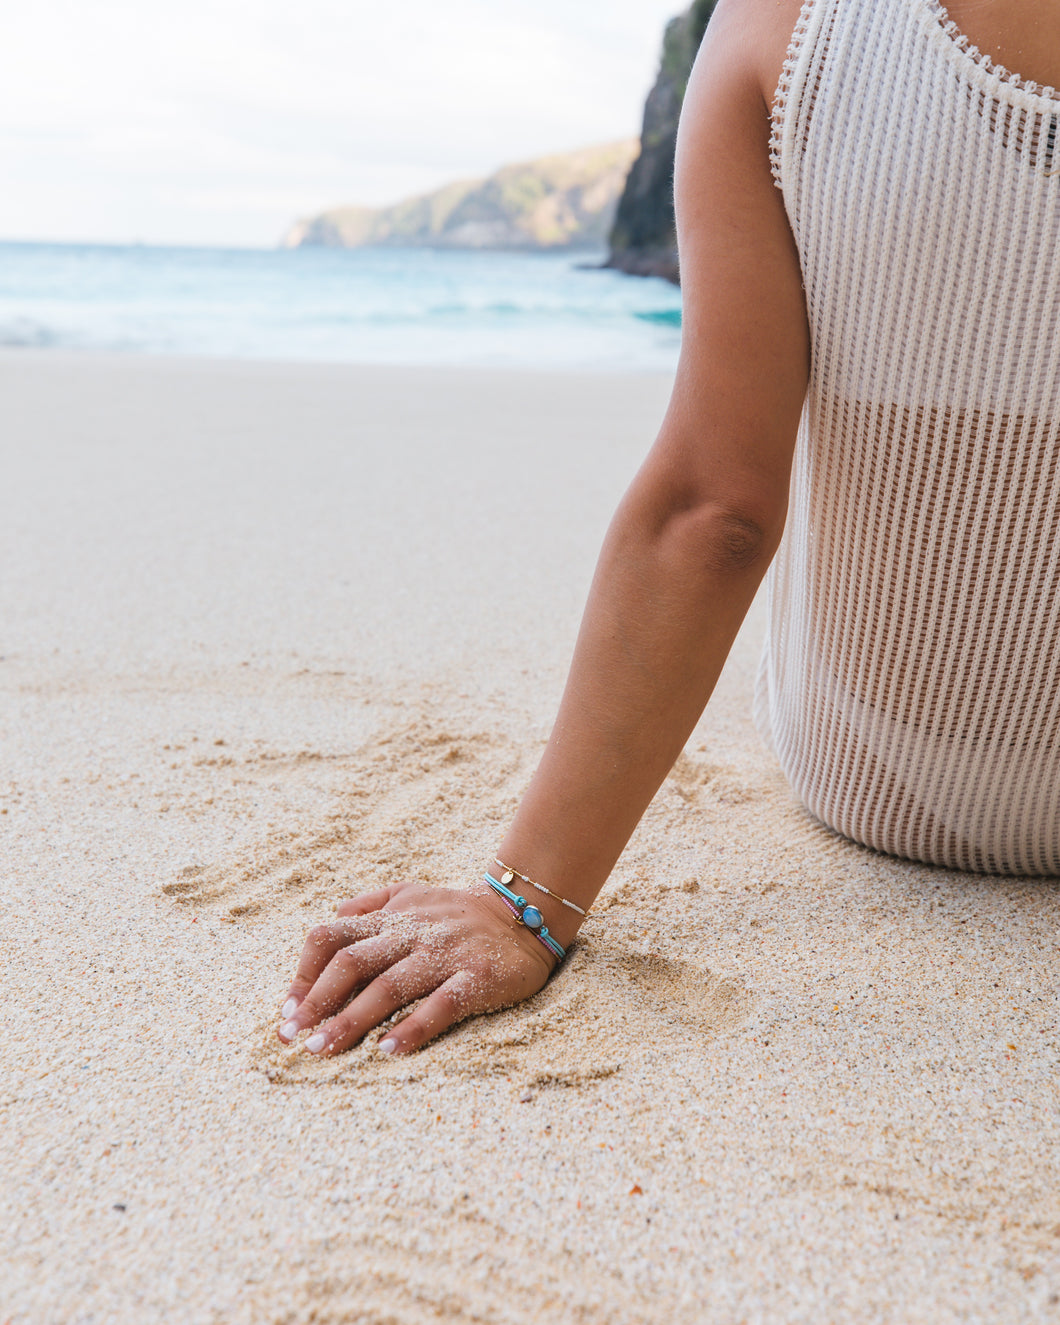 Save the oceans, wear stylish beaded bracelets and swimwear.